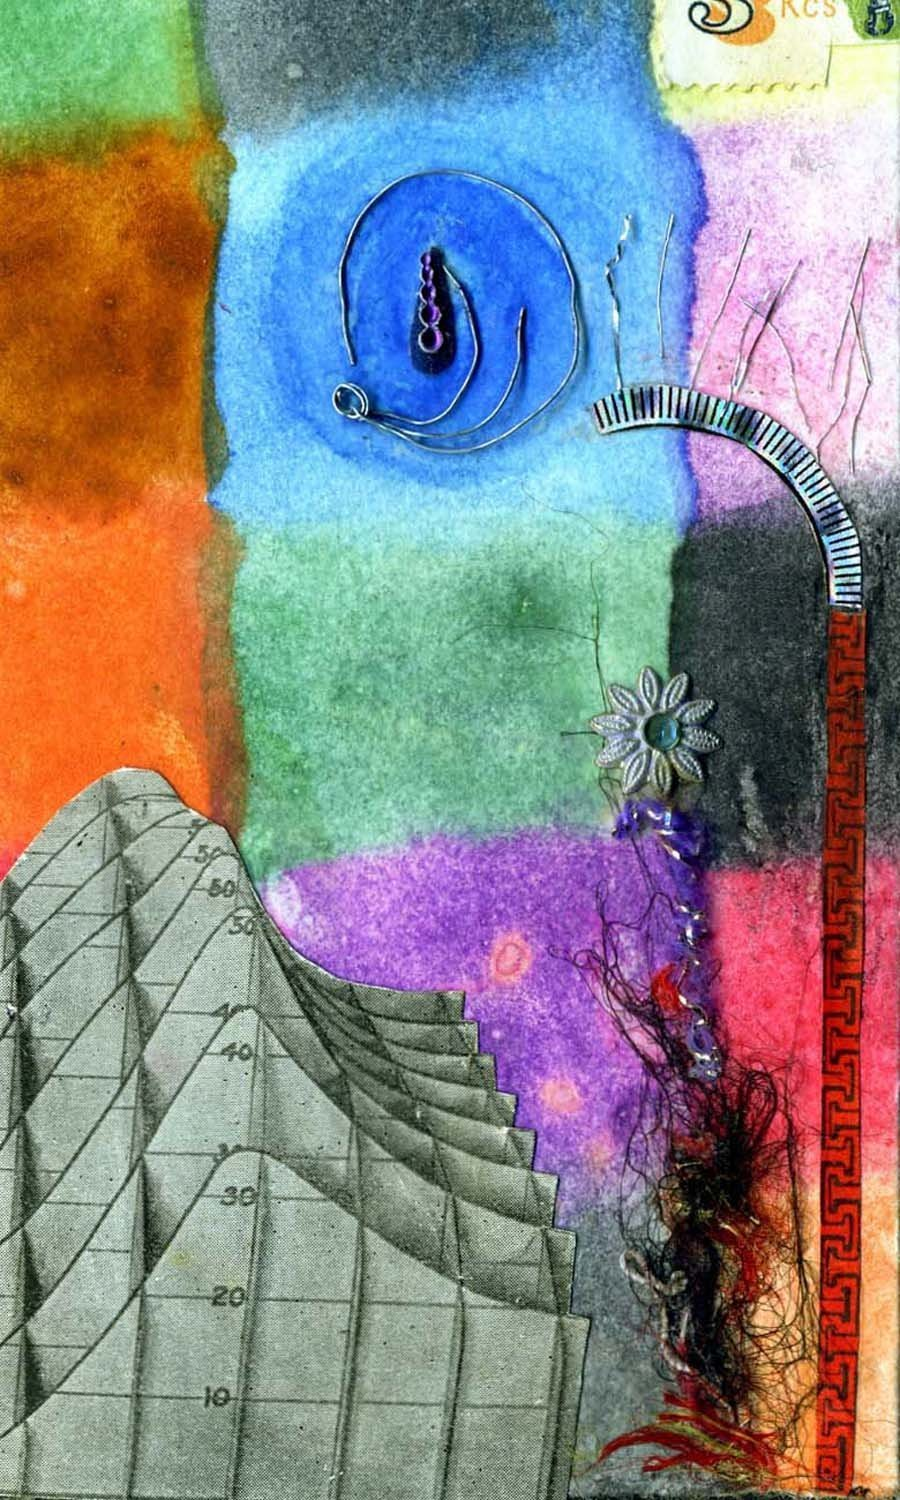 Souvenirs.. 5 original abstract watercolors with collage elements